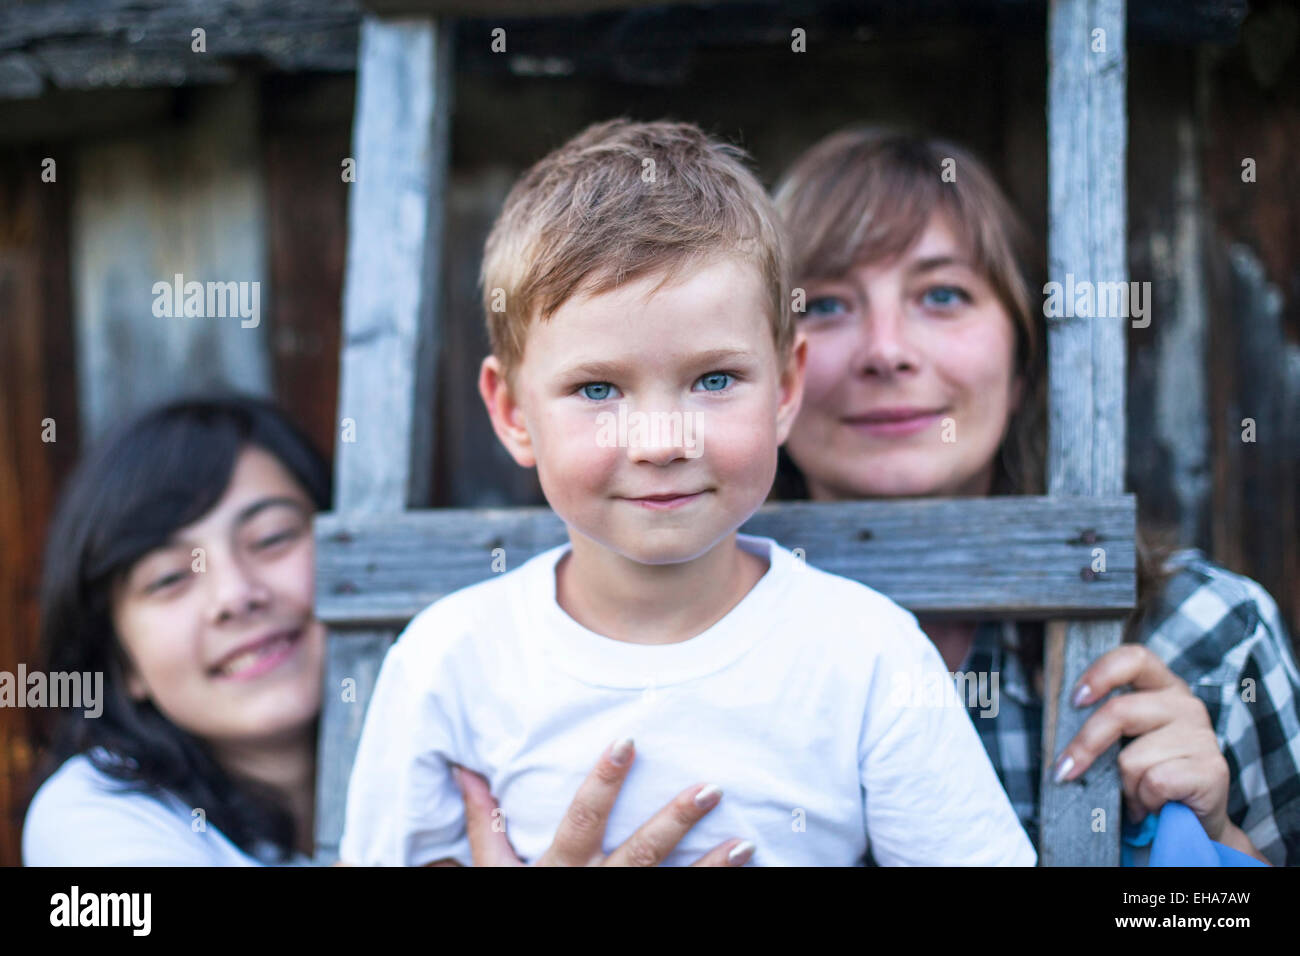 Happy family outdoor, a little boy in the foreground. - Stock Image